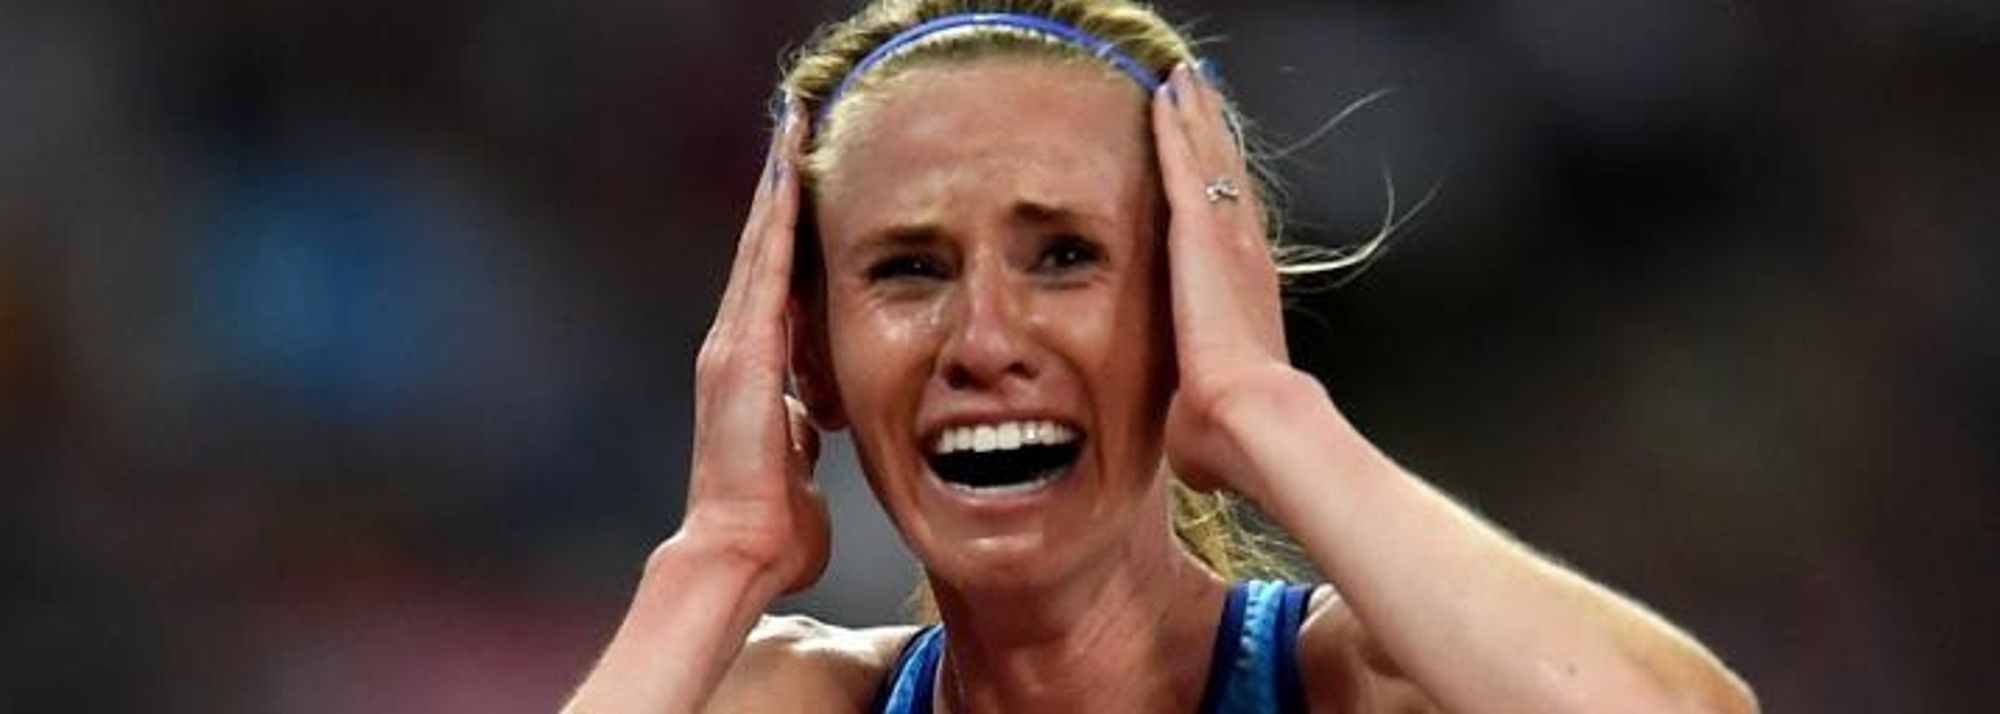 At an IAAF World Championships London 2017 full of surprises, there were few bigger than the sight of Courtney Frerichs chasing home her American compatriot Emma Coburn and taking the silver medal in the women's 3000m steeplechase.